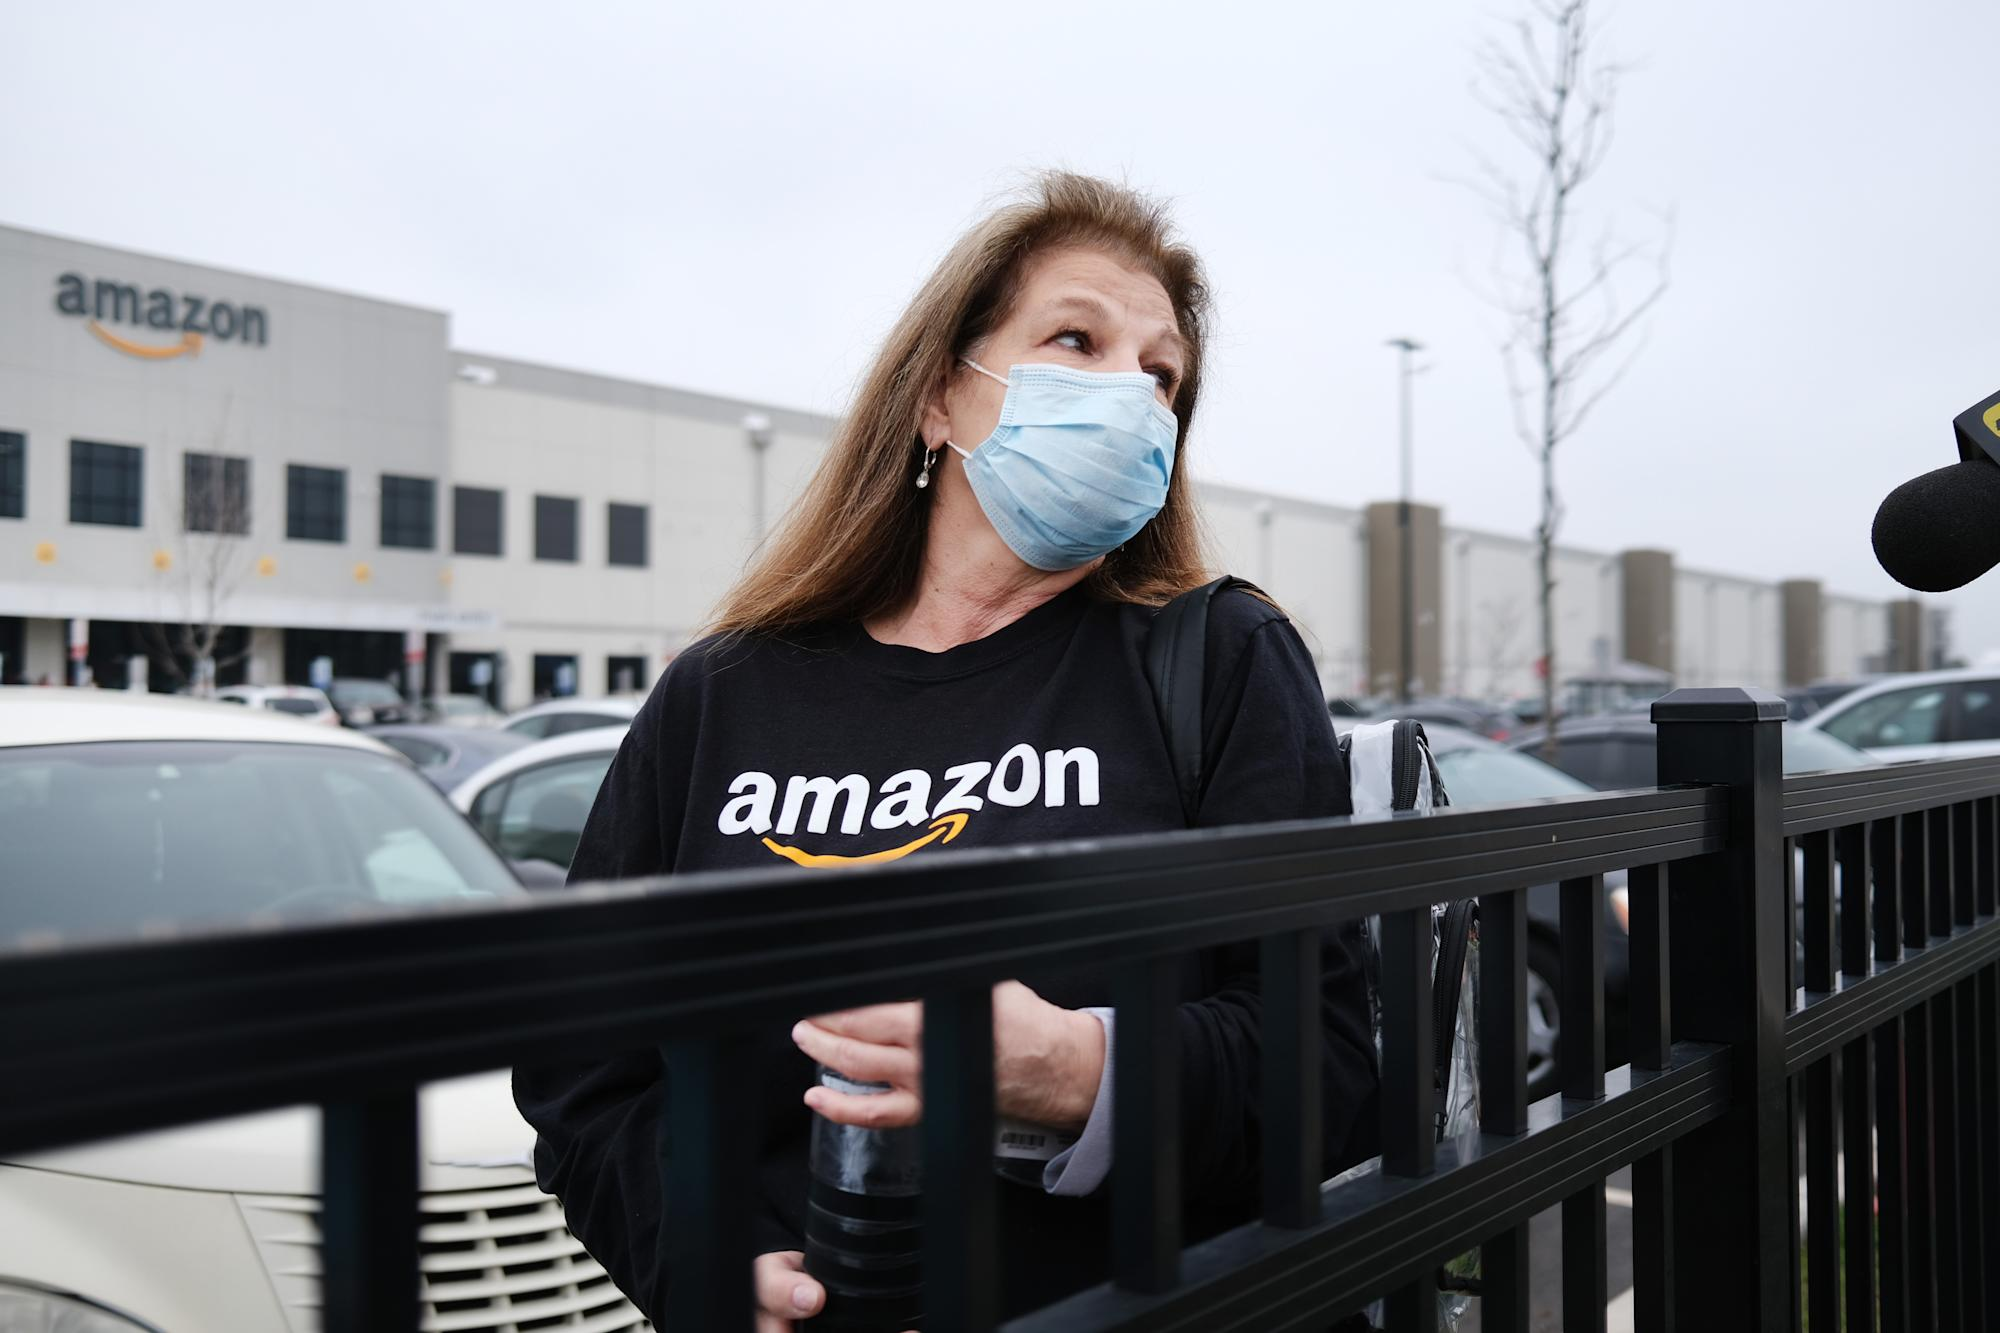 'We're risking our lives': Why Amazon warehouse workers are walking out over coronavirus fears